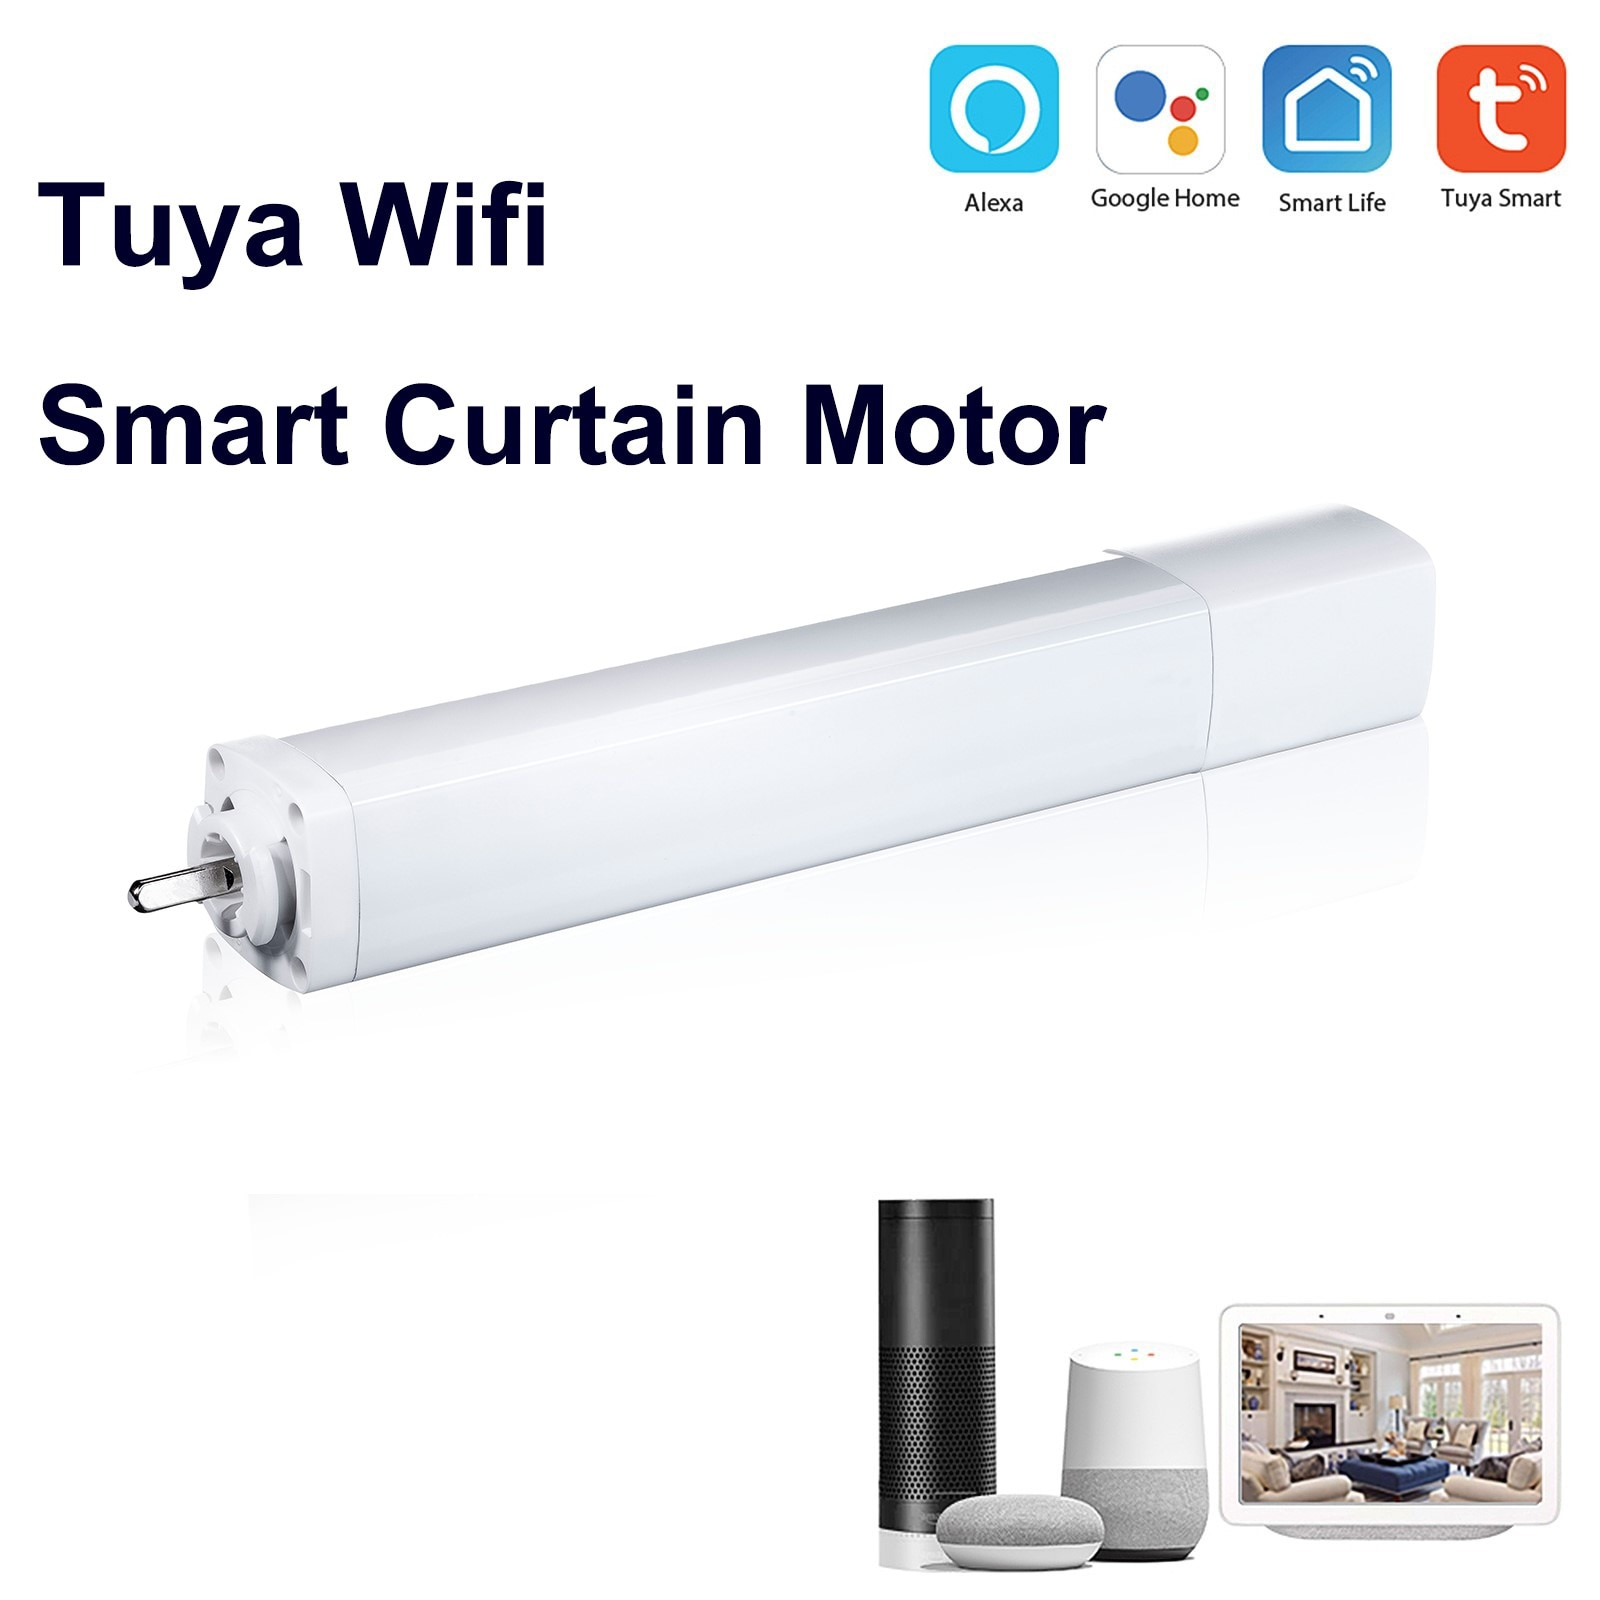 wl irc wifi universal remote control smart remote house control voice smart remote intelligent control Tuya Wifi smart Intelligent Curtain Motor Ultra Quiet Electric Wireless Remote Control Voice Control Tools for Alexa Google Home